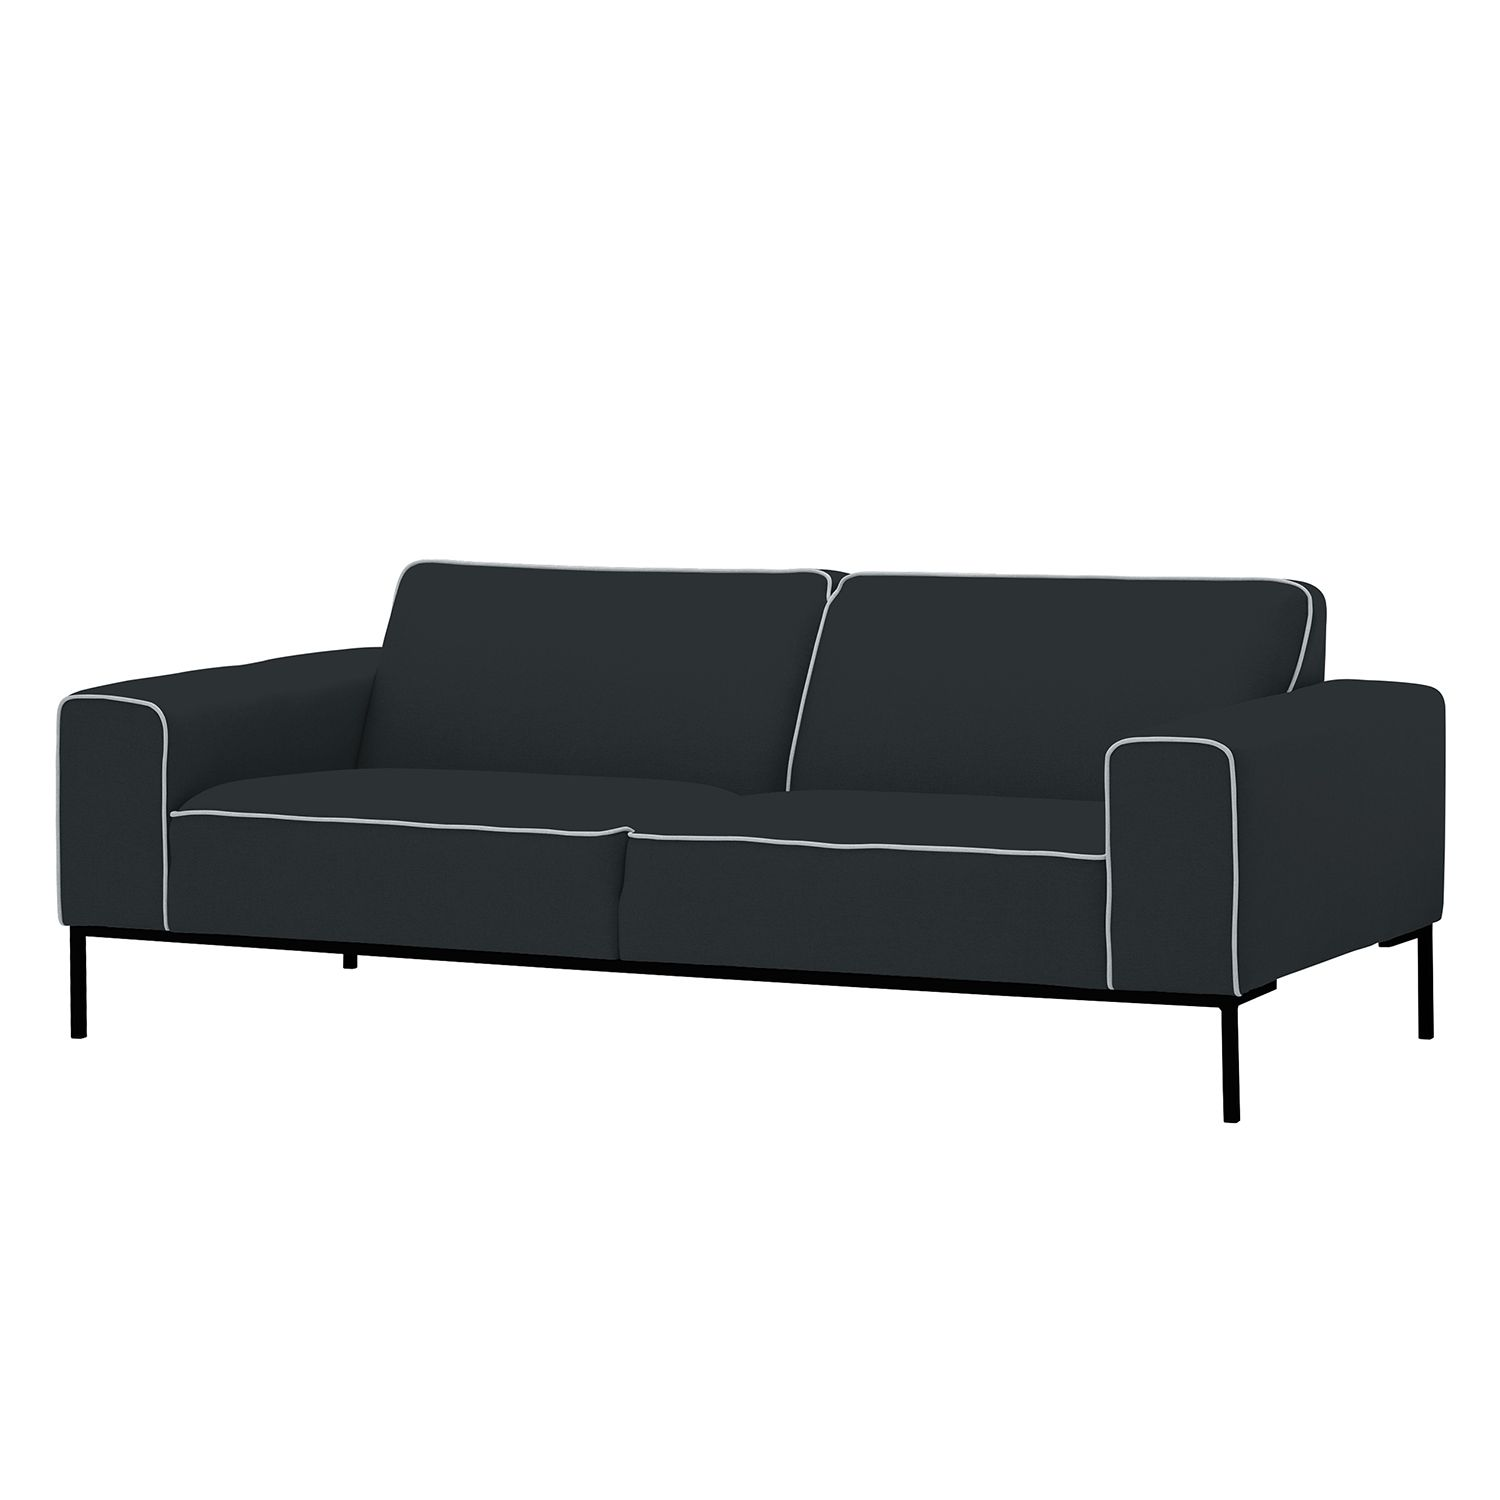 sofa ampio duo 3 sitzer webstoff schwarz stoff floreana anthrazit studio copenhagen. Black Bedroom Furniture Sets. Home Design Ideas